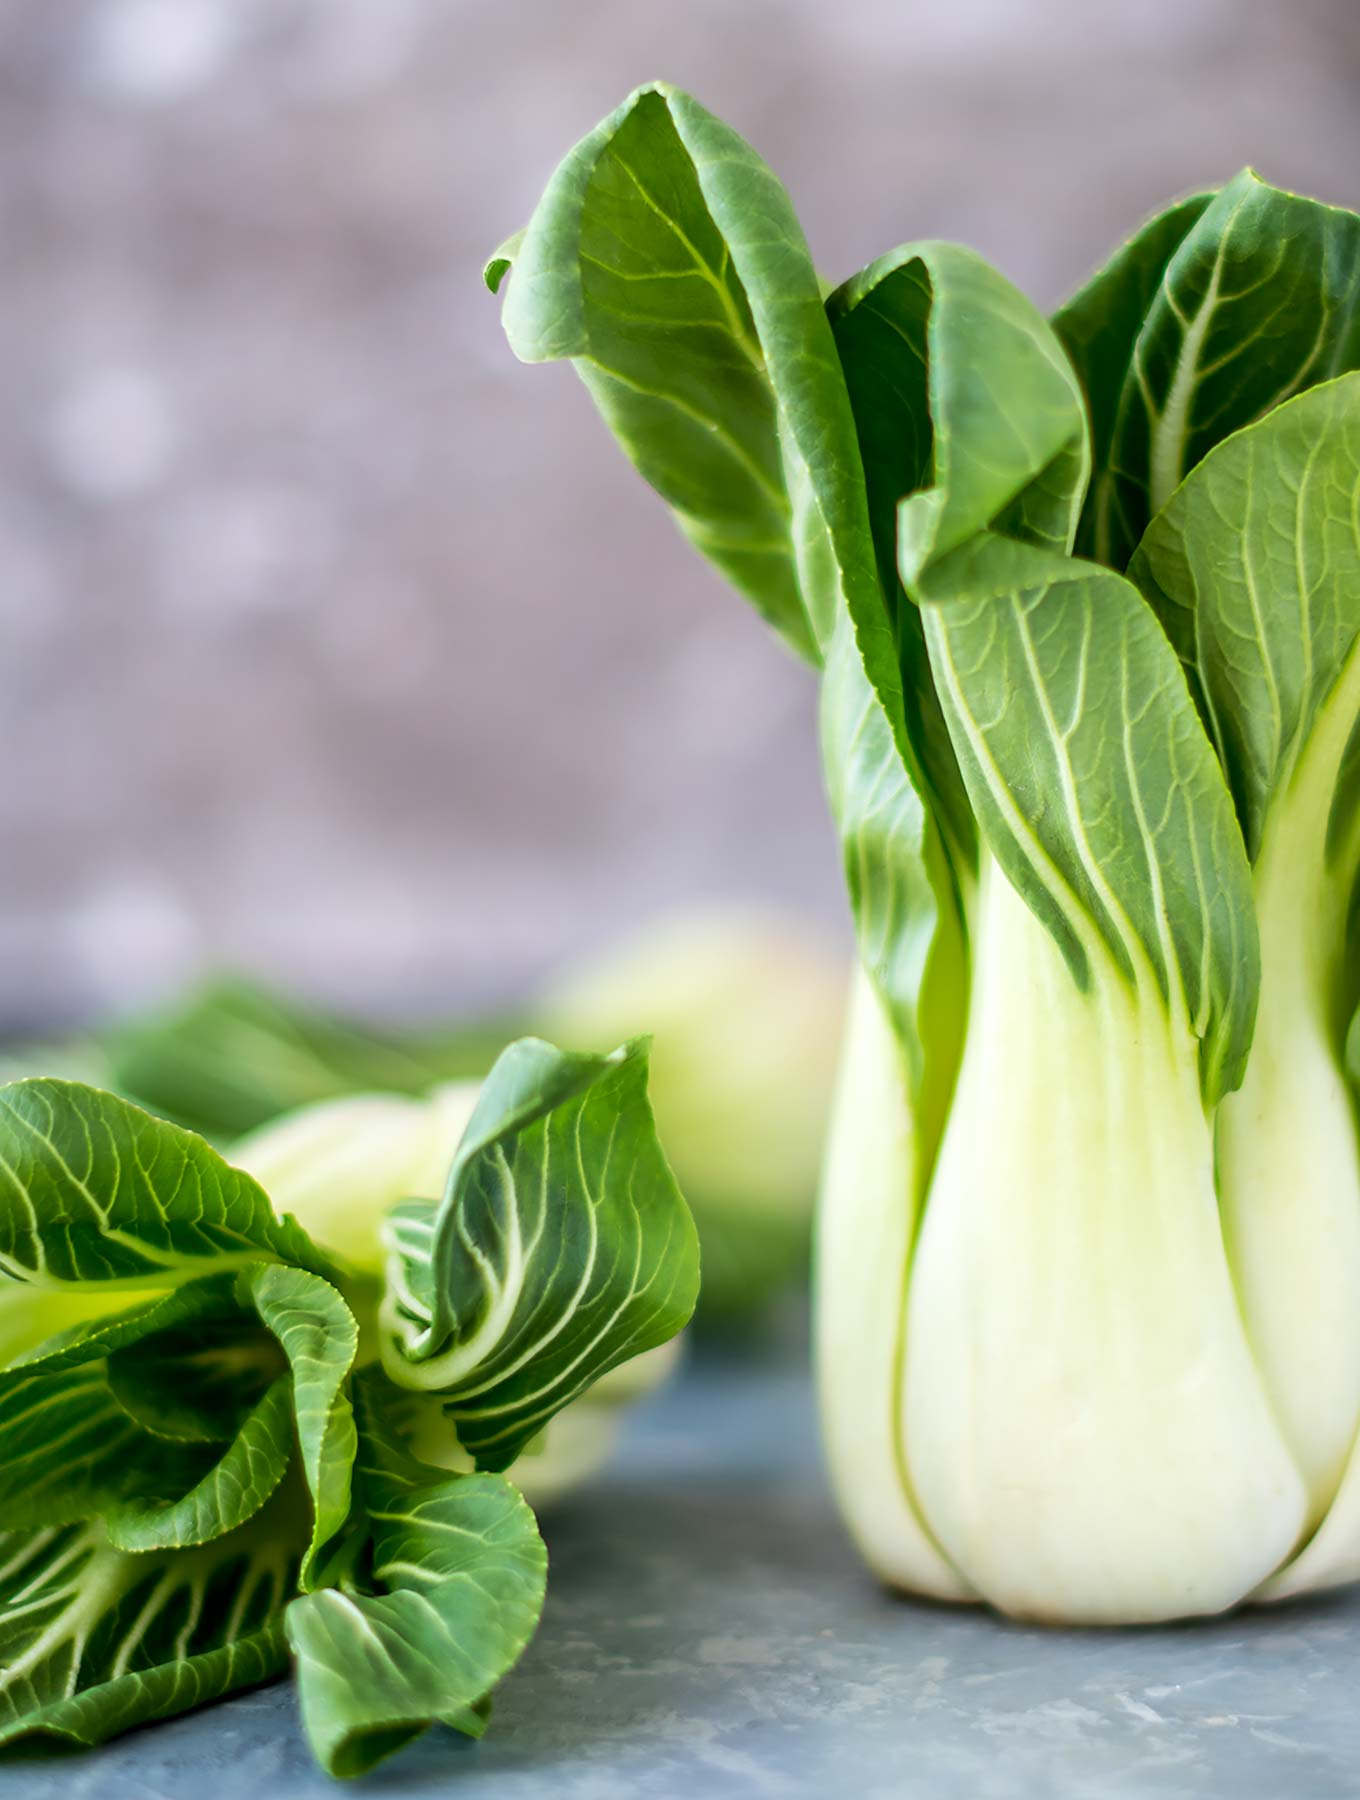 Bok choy on a gray surface